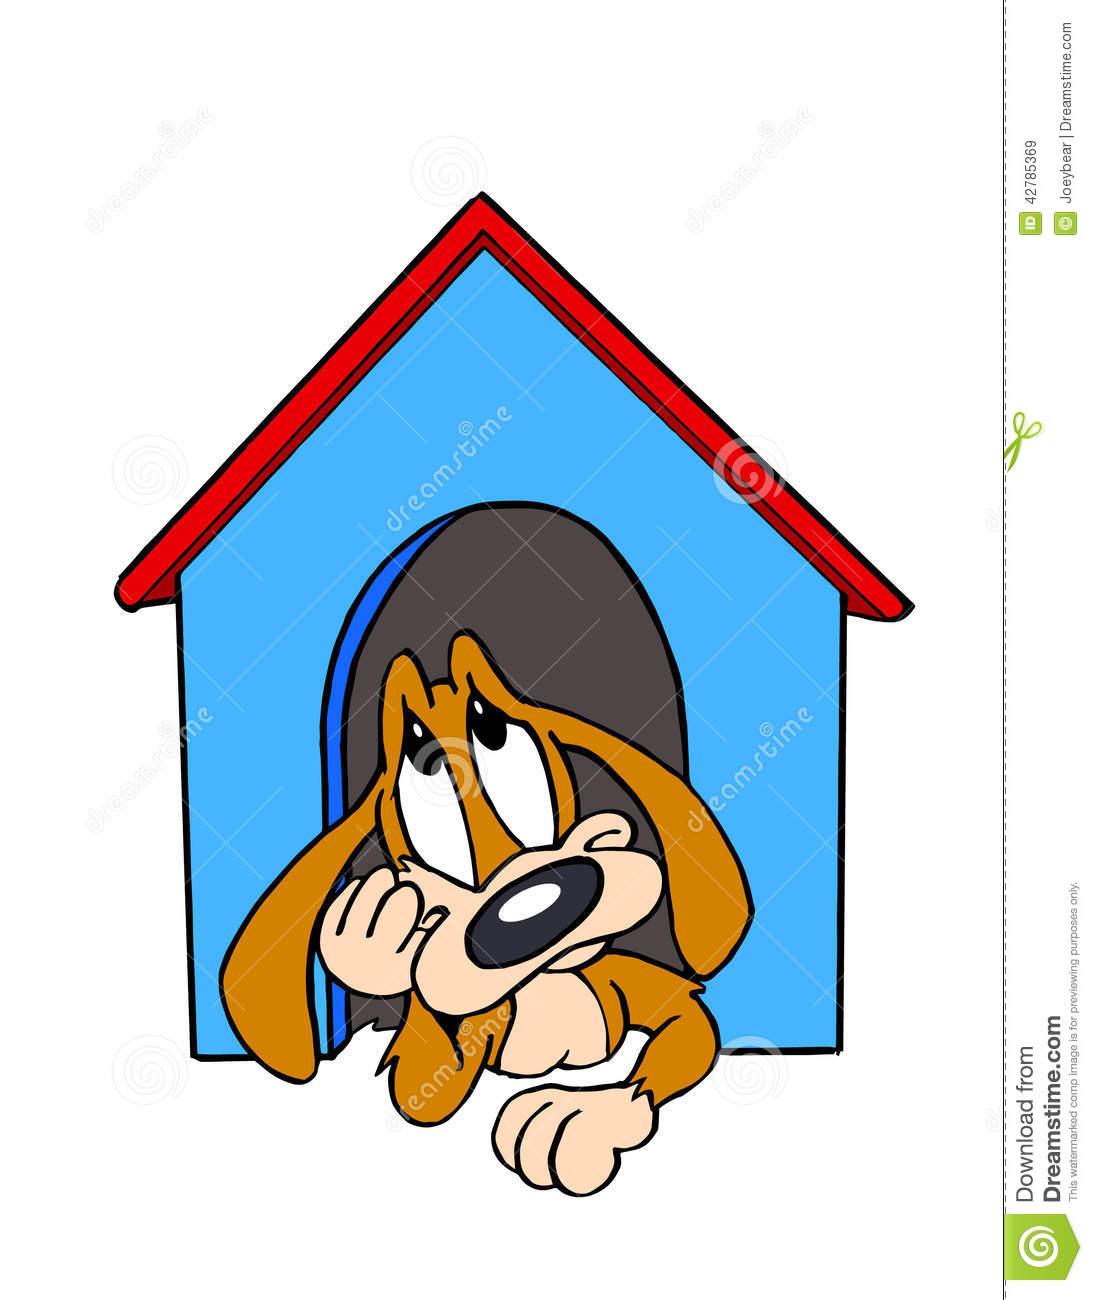 dog in doghouse clipart - photo #18